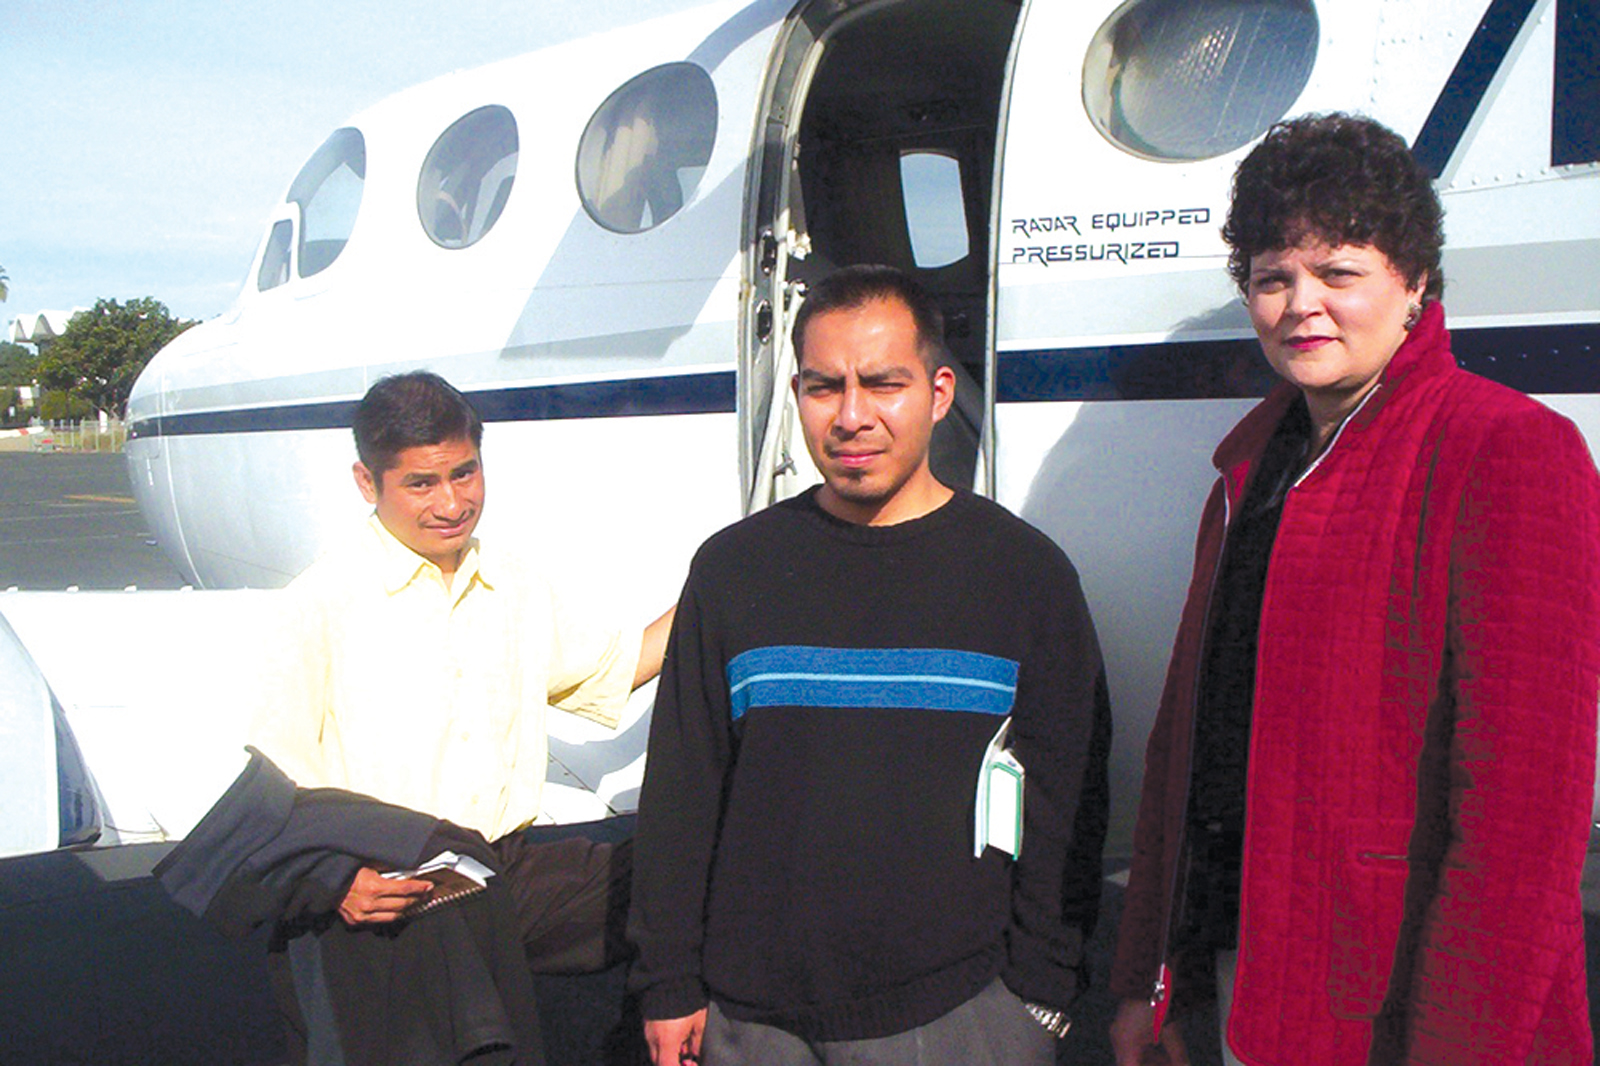 Angel Flight West: Compassionately Serving those in Need